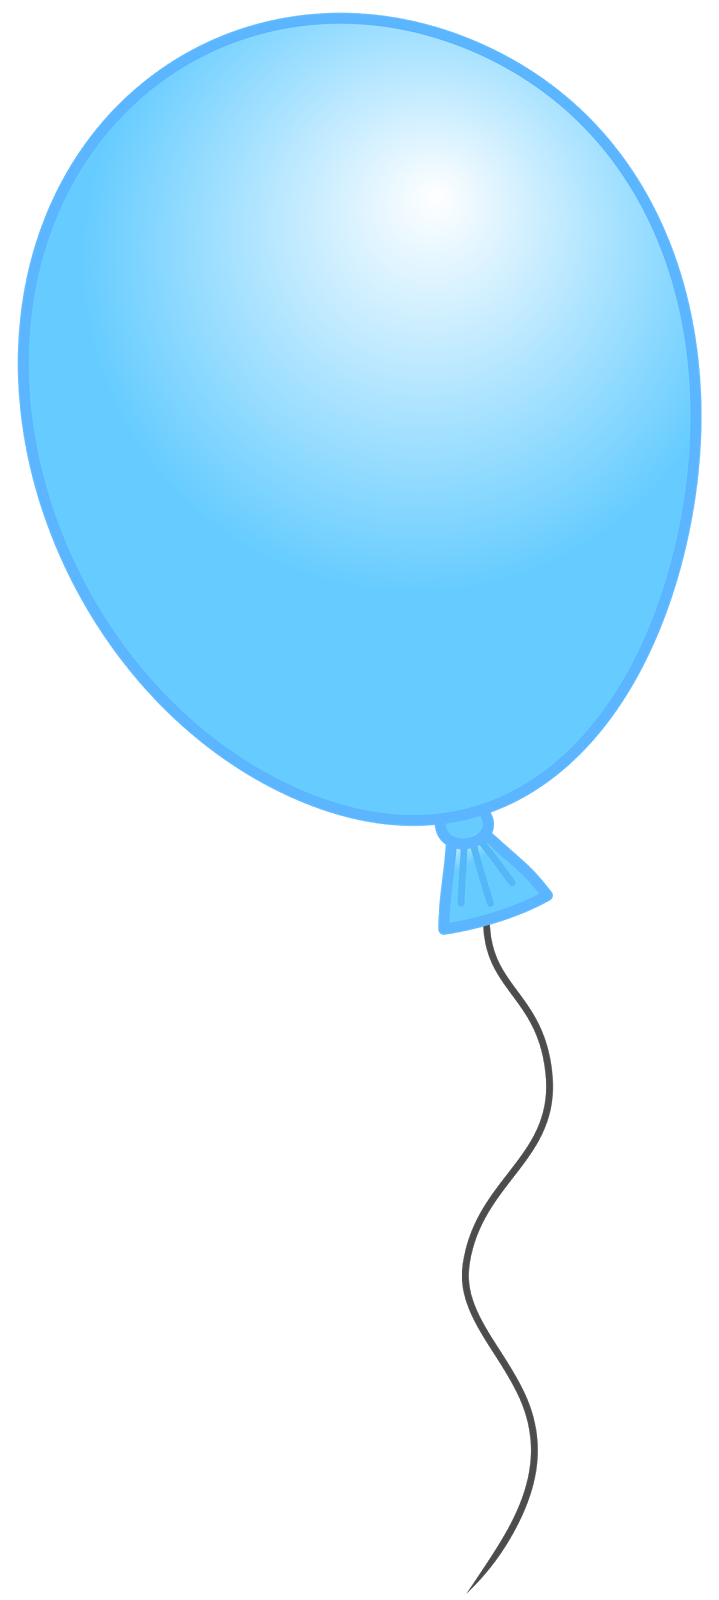 Blue balloon clipart free jpg freeuse download Free Blue Balloon Cliparts, Download Free Clip Art, Free Clip Art on ... jpg freeuse download